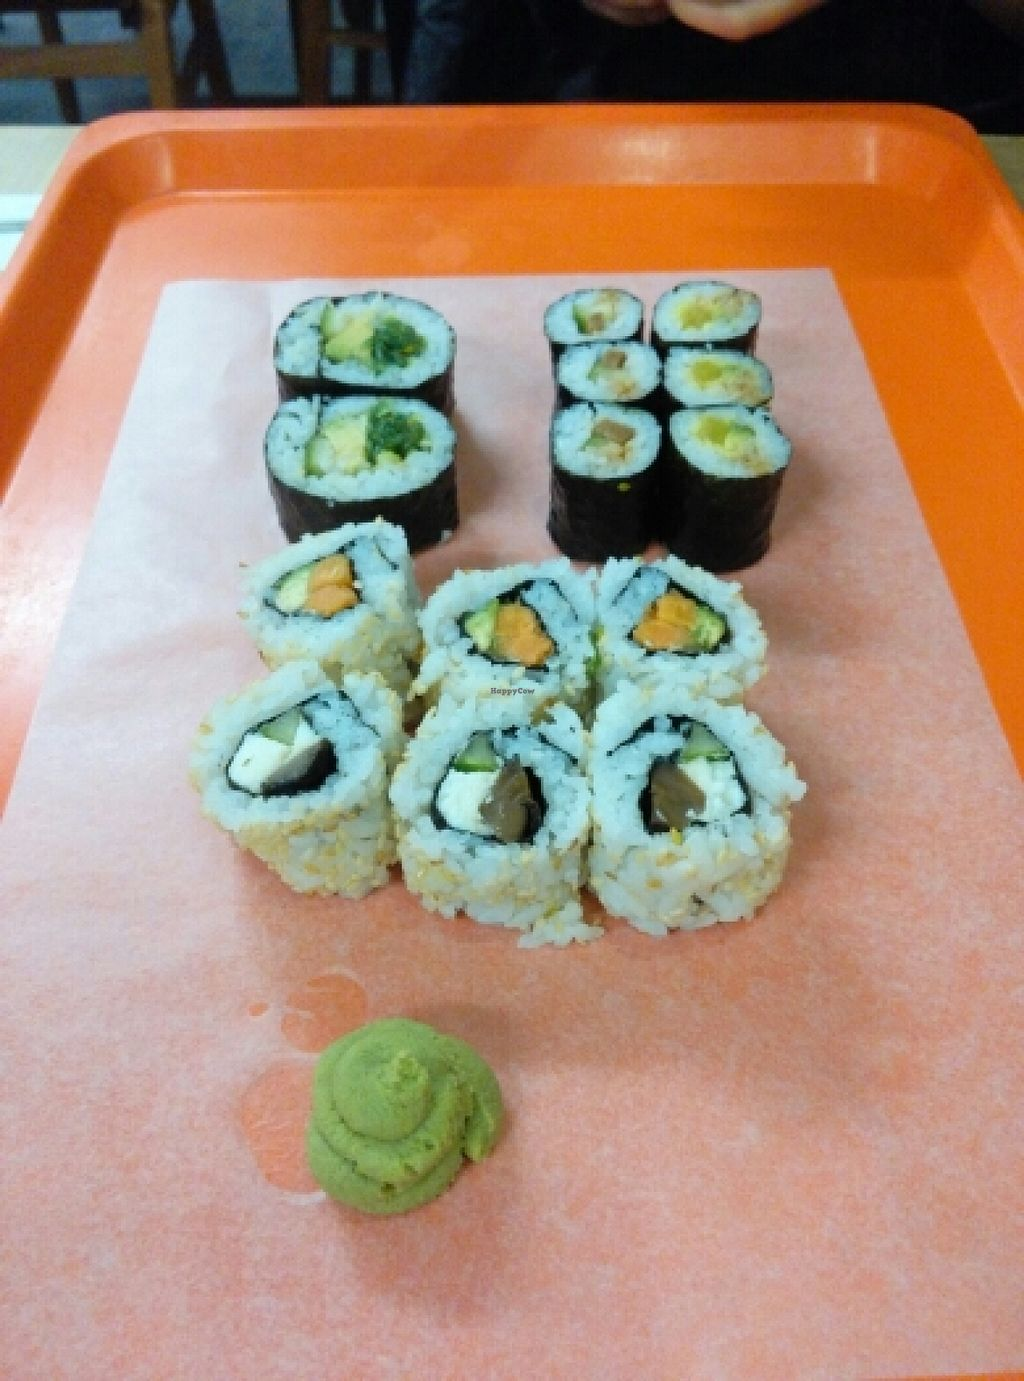 """Photo of CLOSED: MakiMaki Sushi Green  by <a href=""""/members/profile/WenzelStrapinski"""">WenzelStrapinski</a> <br/>Supermaki Bento 3 <br/> December 10, 2015  - <a href='/contact/abuse/image/66112/127862'>Report</a>"""